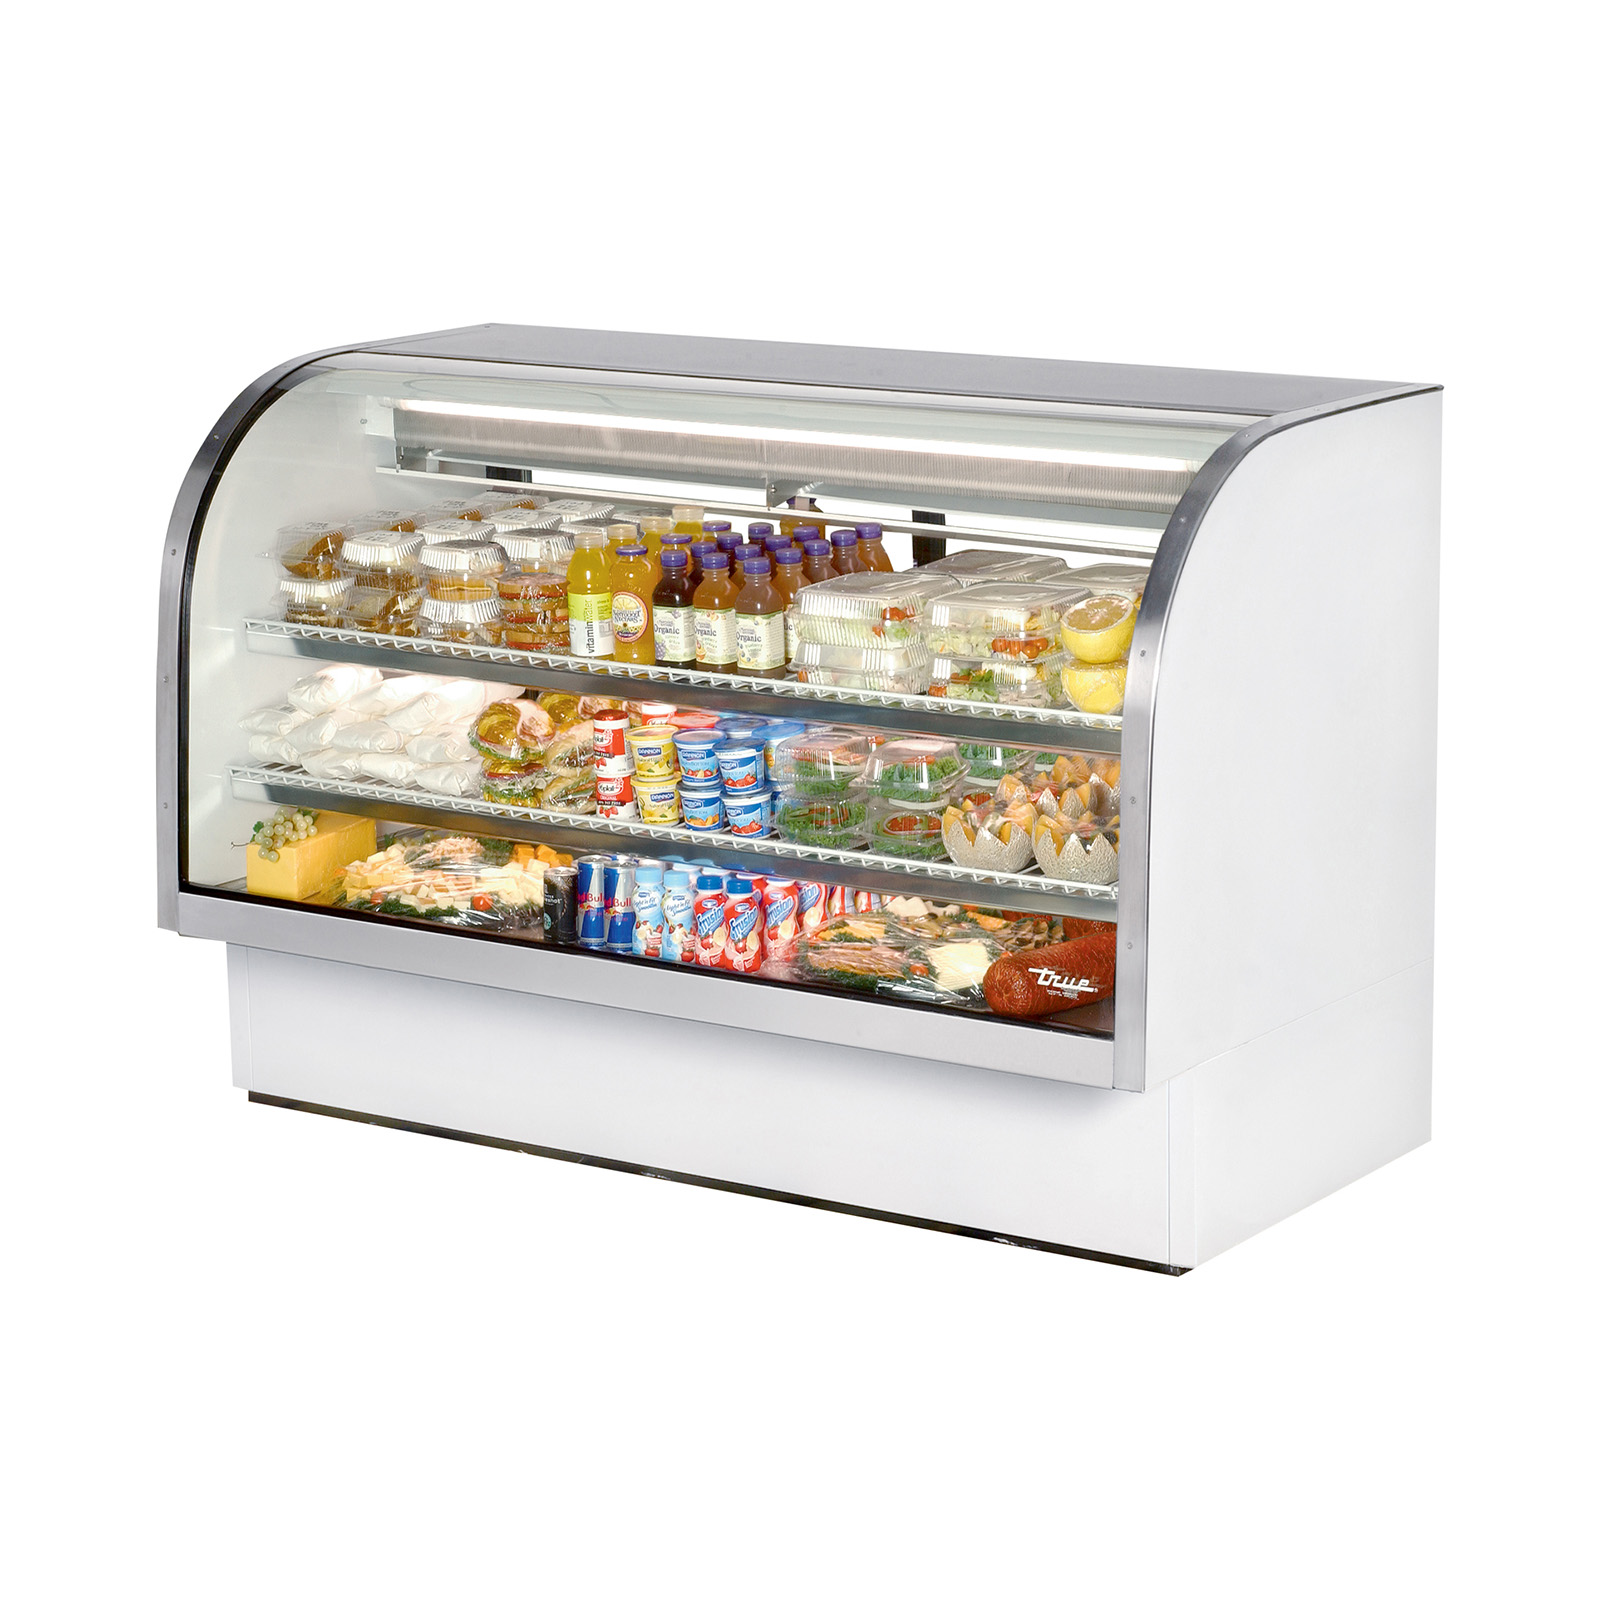 TCGG-72 True - Curved Glass Deli Case 72-1/8